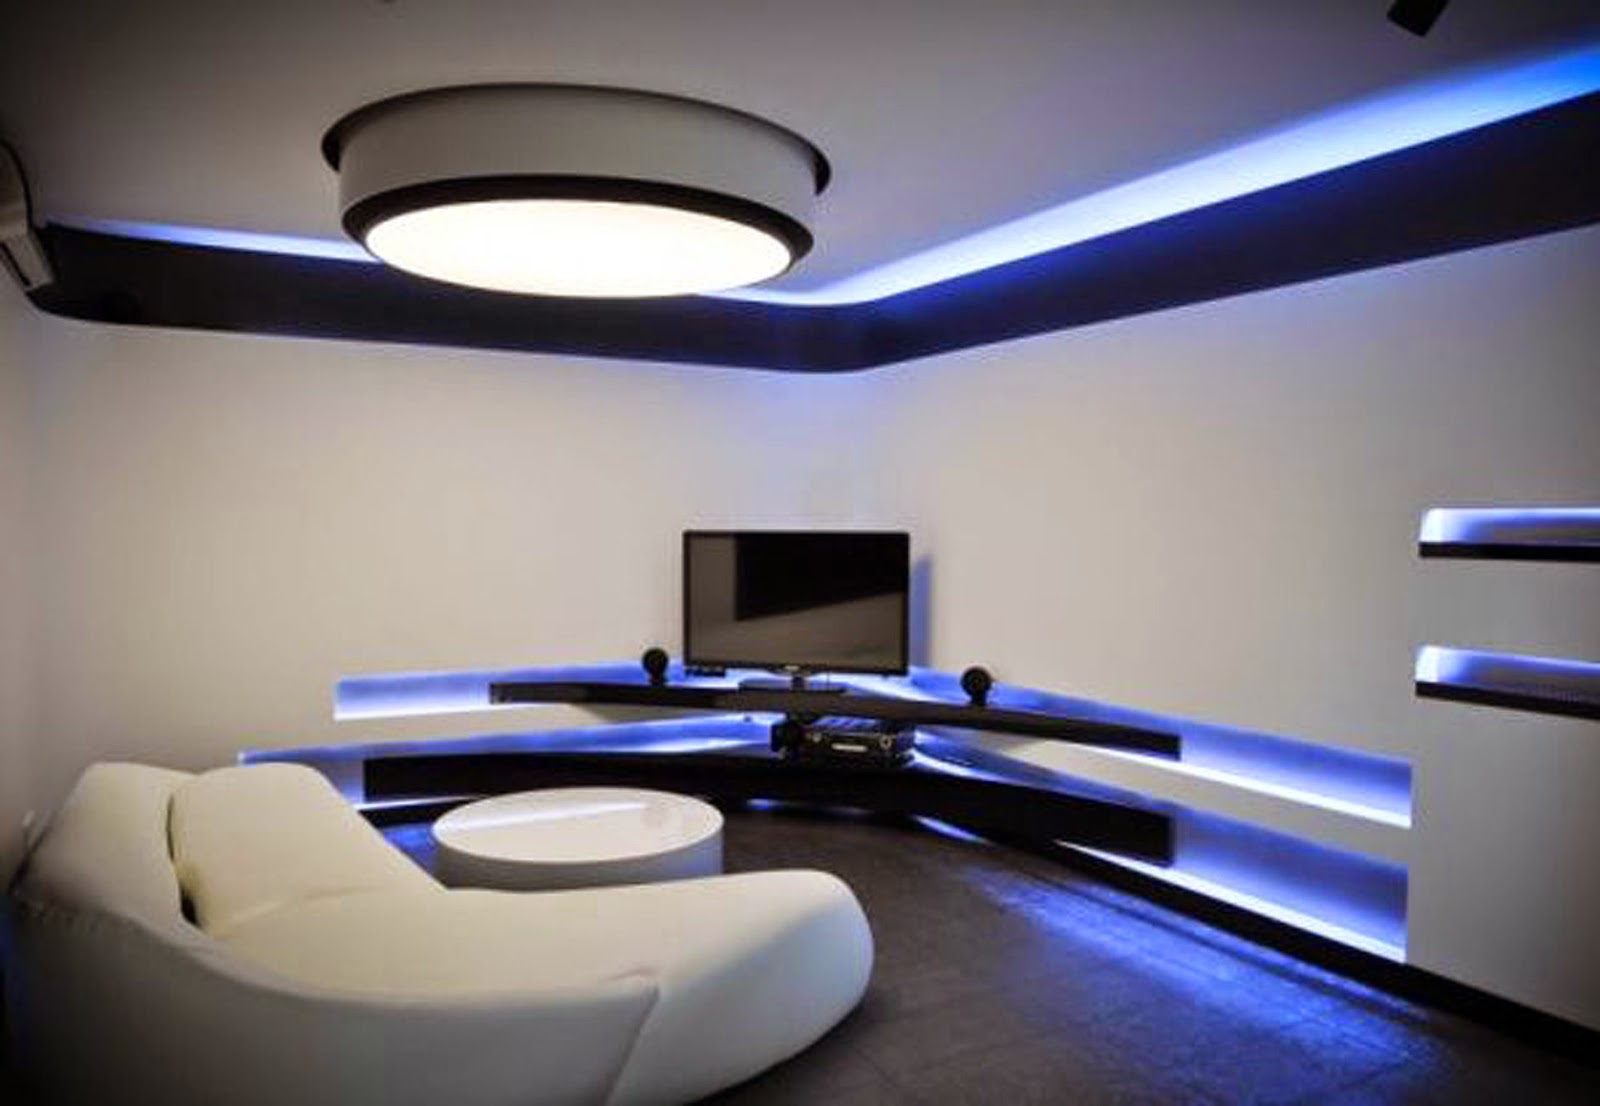 High- tech style interior, interior designs high-tech style, ideas for High- tech style, High- tech style,New trends for High- tech style interior